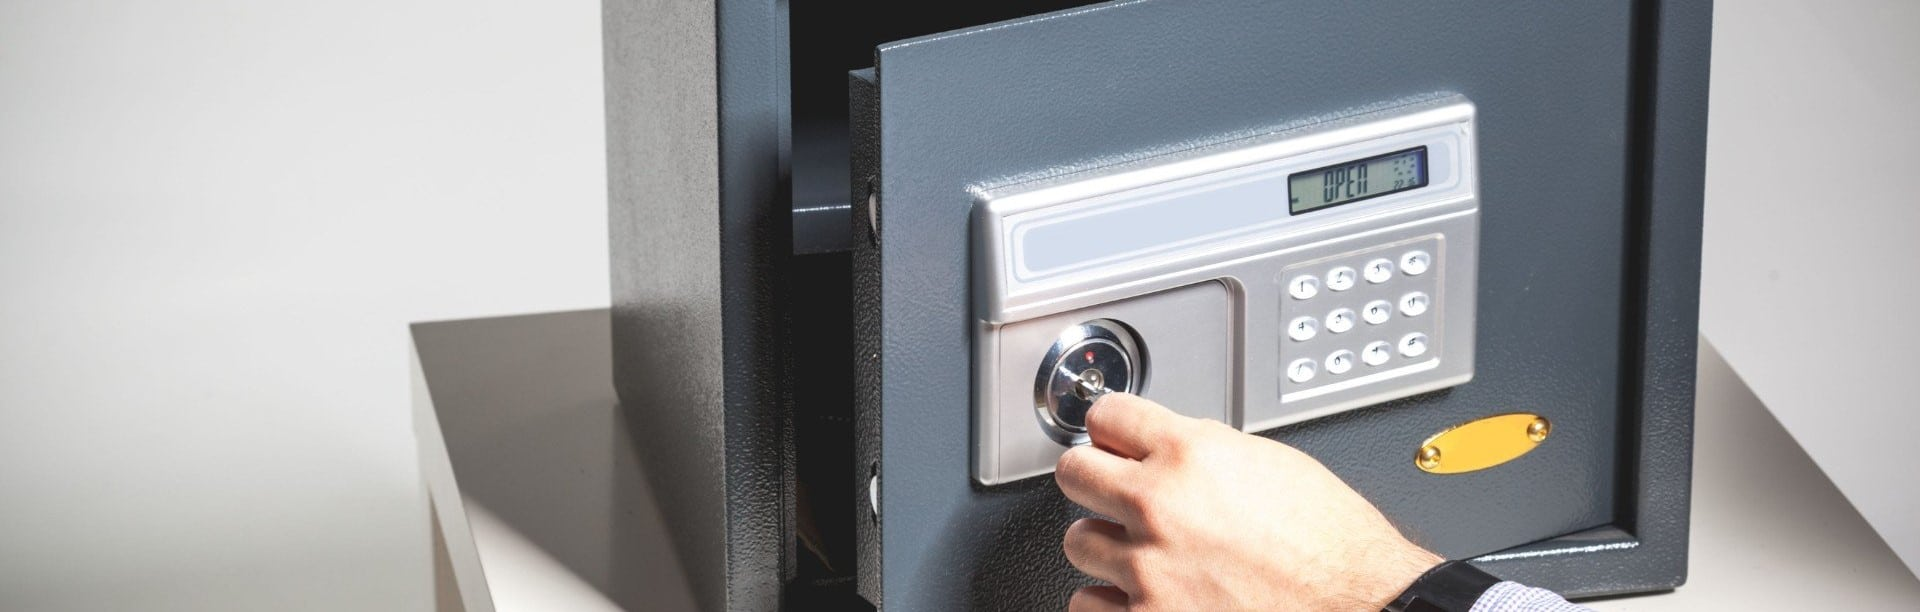 7 Best Fireproof Safes Dec 2019 Reviews And Buying Guide